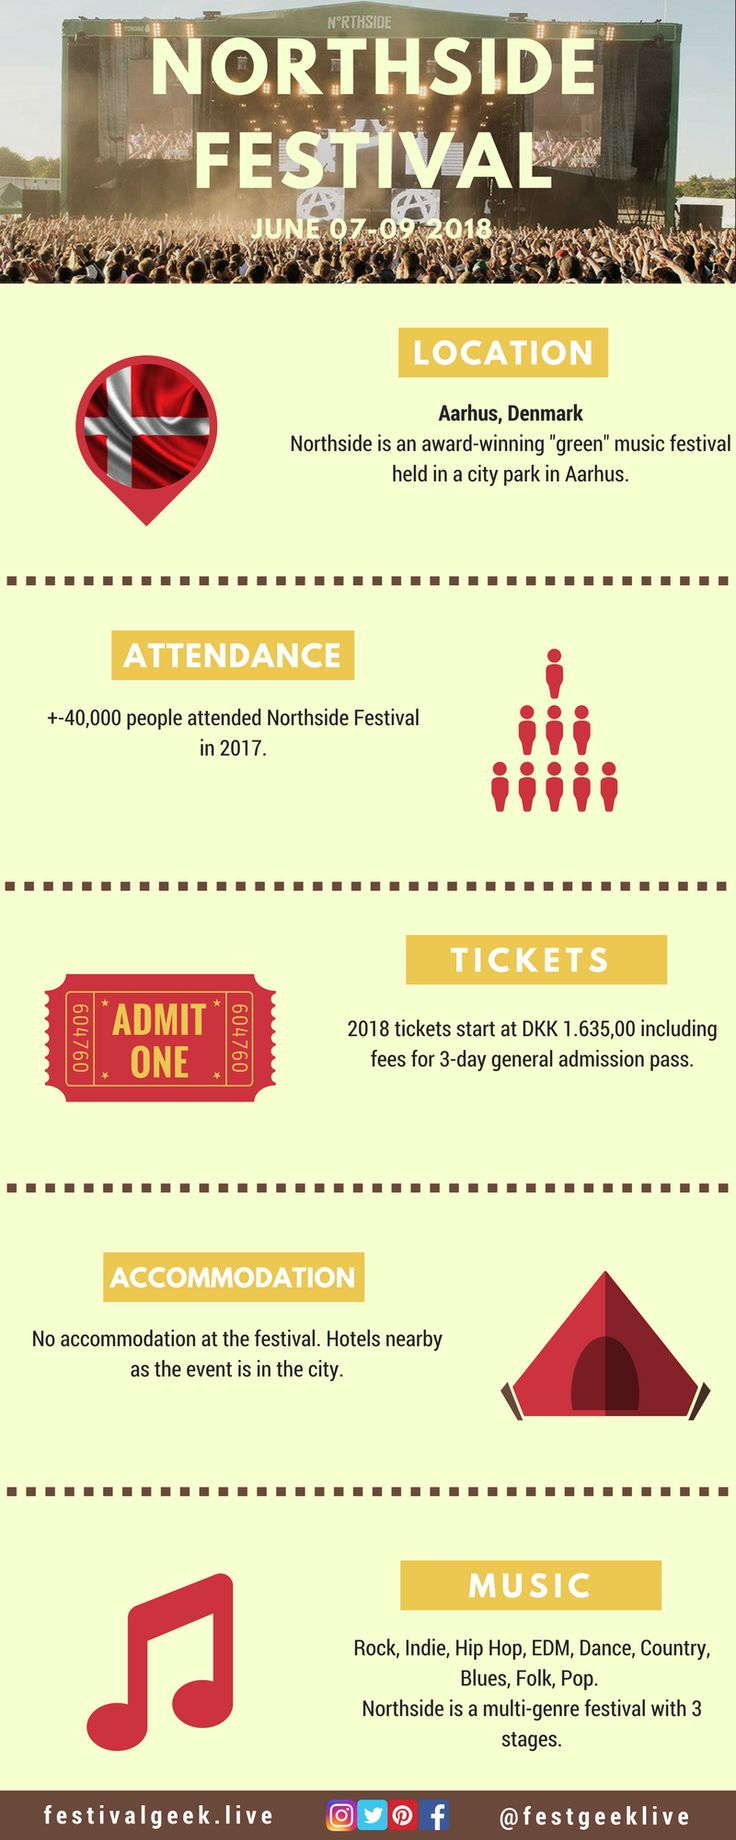 Northside Festival in Denmark puts a strong emphasis on their green initiatives. The festival takes place in the city of Aarhus and attracts around 40,000 people.